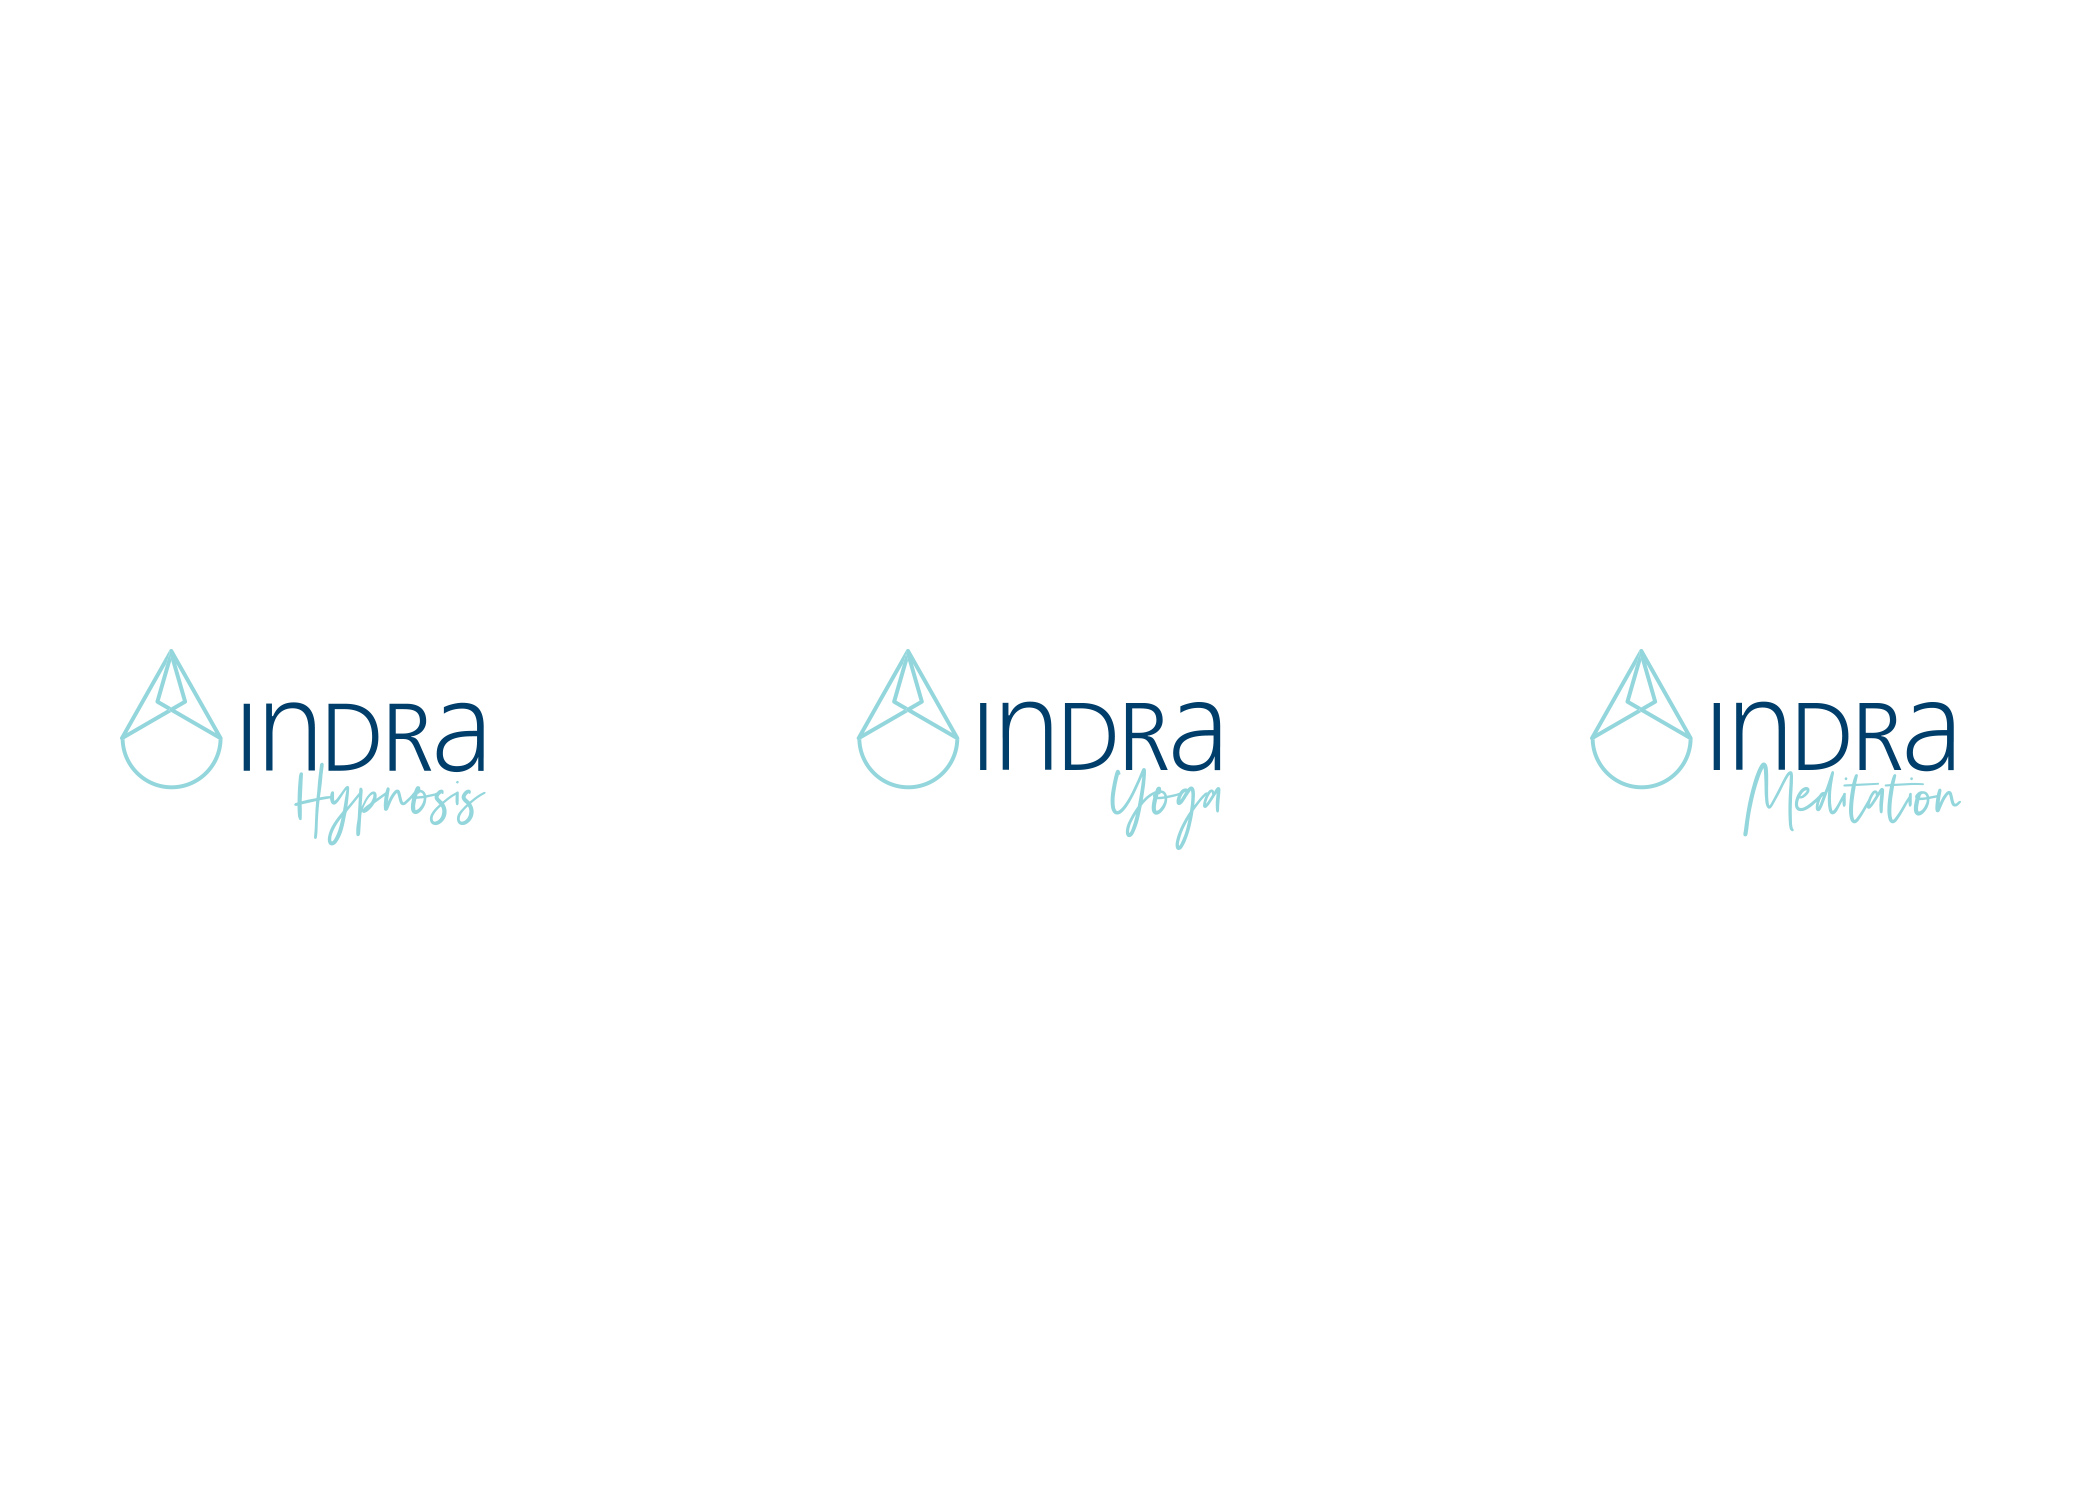 """Indra logo designs showcasing 3 different options with """"hynosis,"""" """"yoga,"""" and """"meditation"""" underneath each design."""